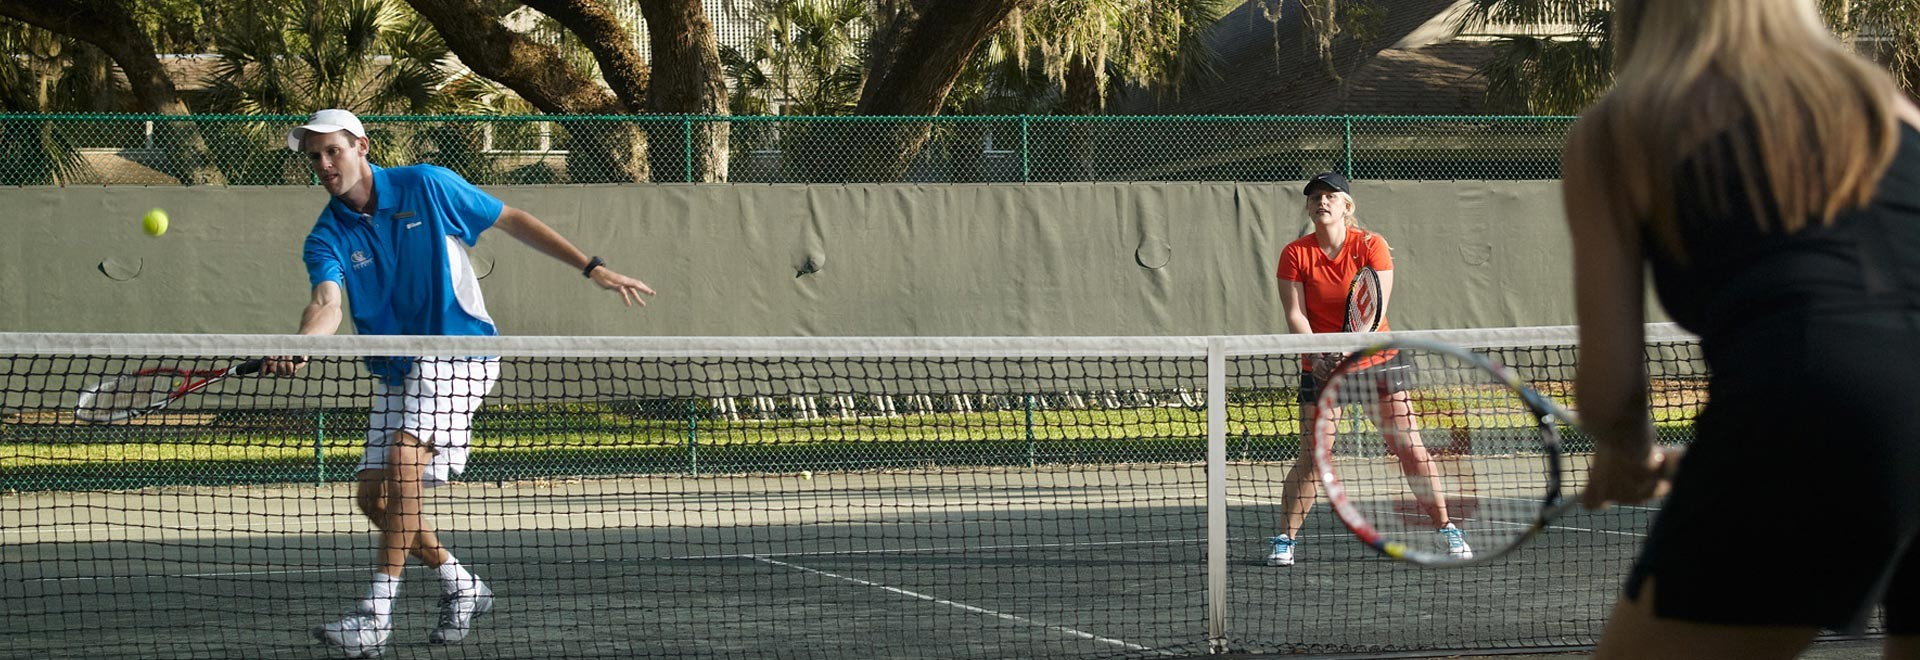 Cliff Drysdale Adult Tennis Camp, Amelia Island - Omni Amelia Island Plantation Resort, Florida